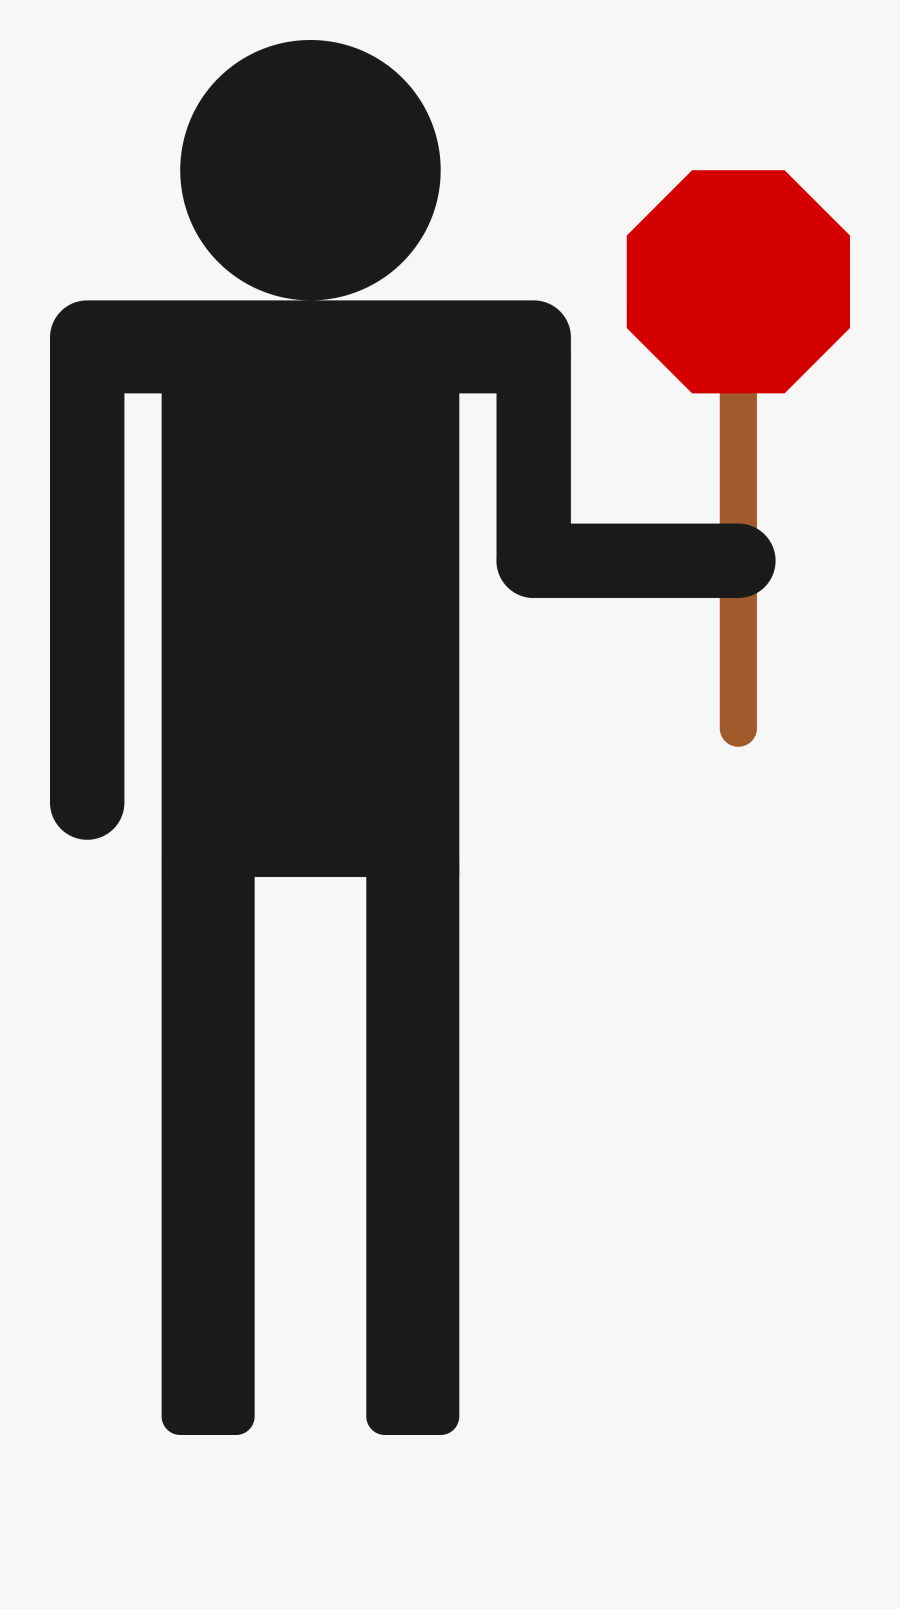 Stop Sign Clip Art Holding - Stop Sign On Stick, Transparent Clipart